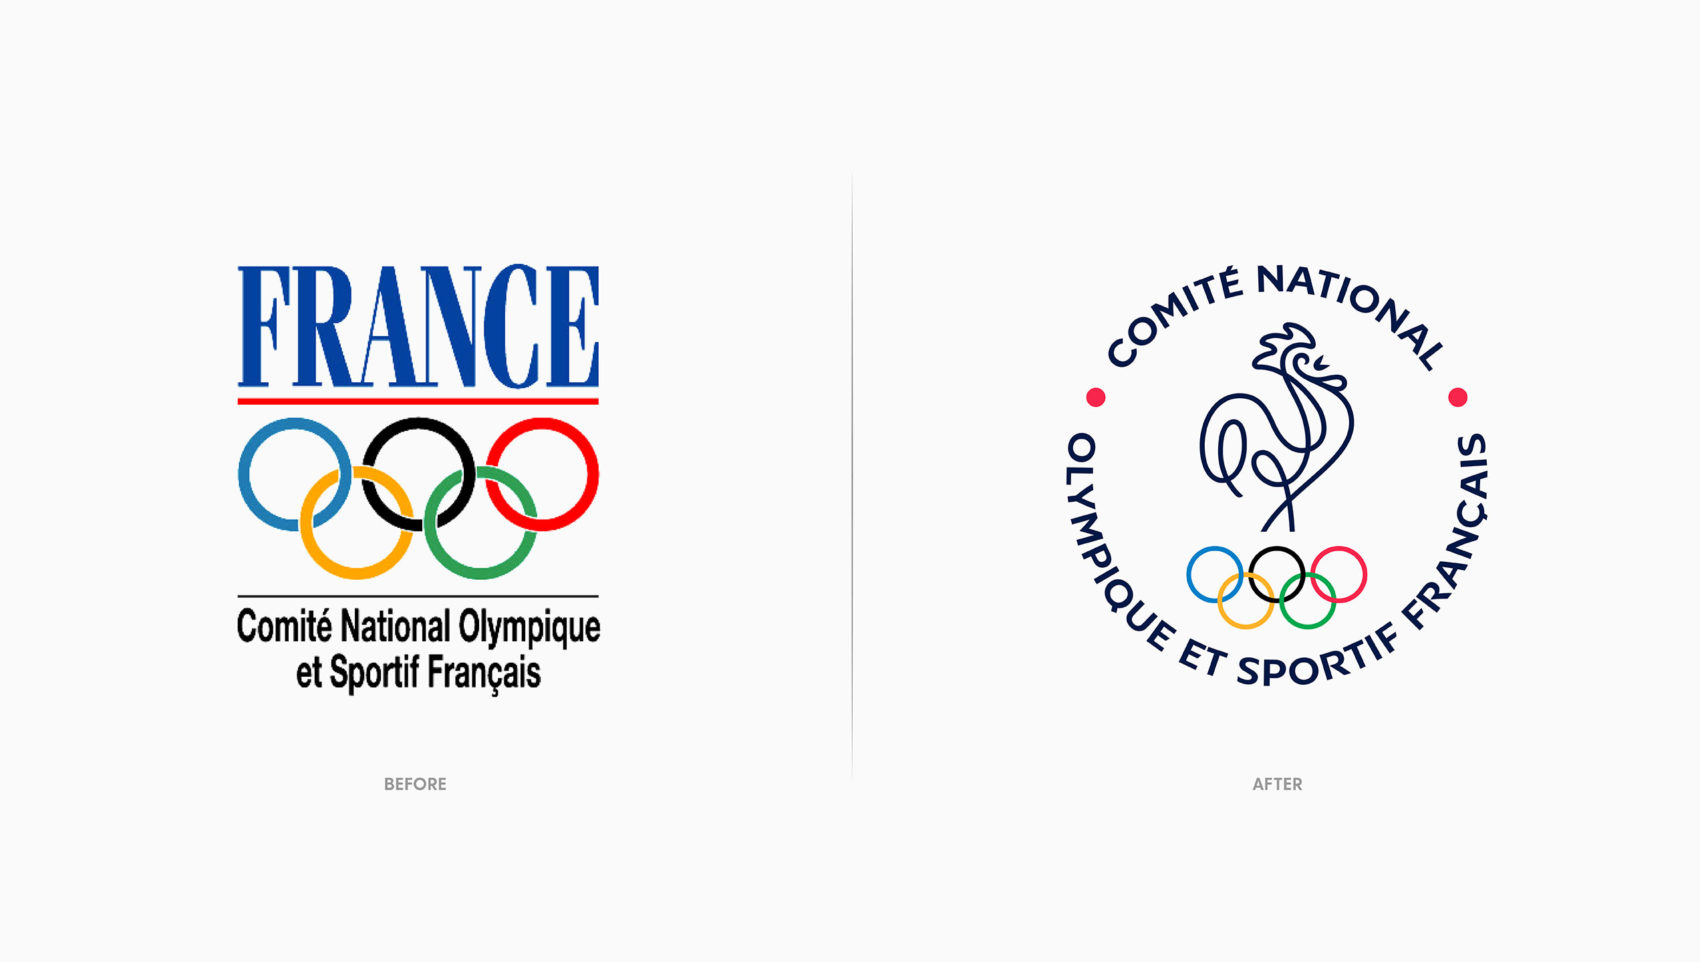 Projet_project_realisation_CNOSF_comite_national_olympique_et_sportif_francais_english